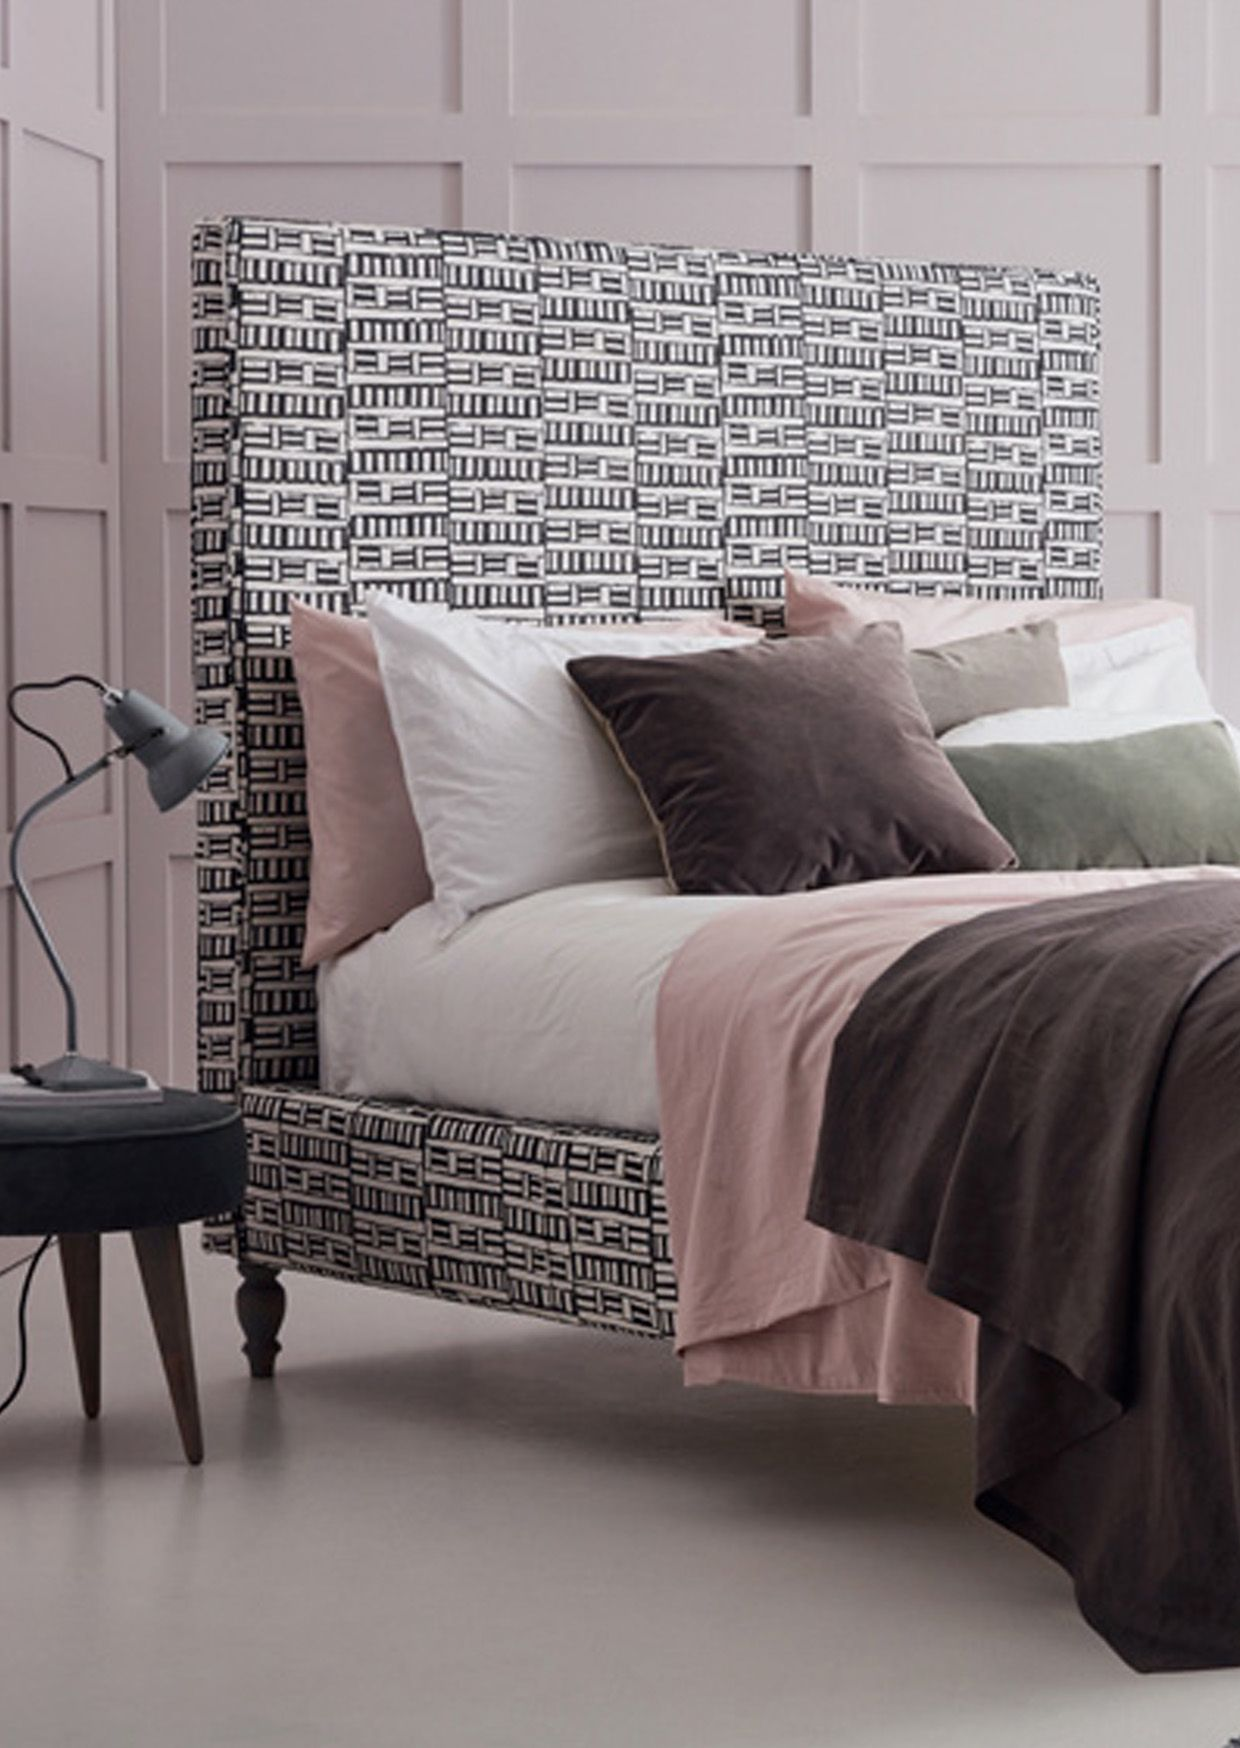 Sleepy House Black And White Block Print Style Upholstered Bed